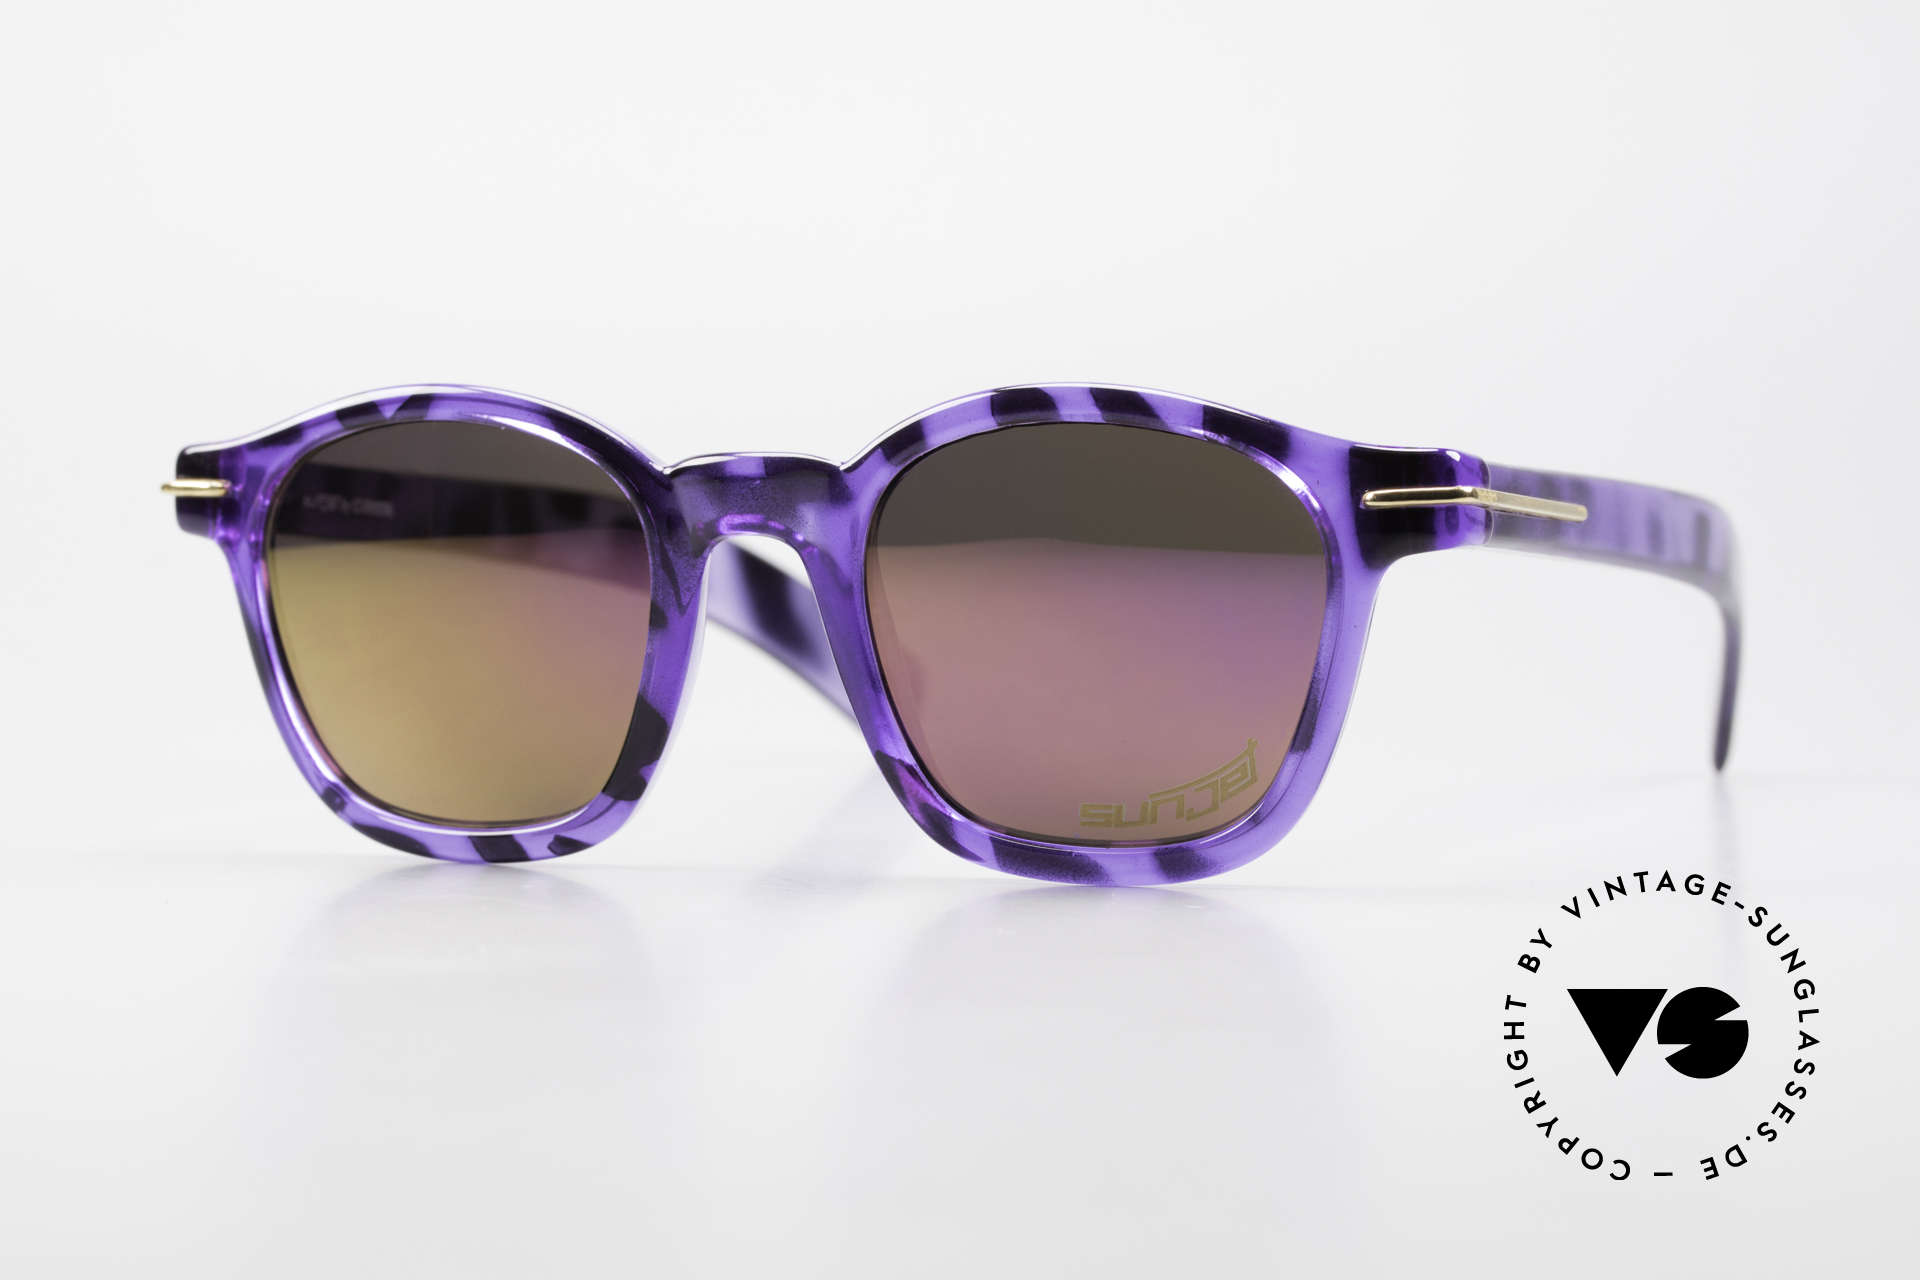 Carrera 5272 Tart Arnel Style James Dean, Carrera SUNJET mod. 5272 sunglasses from the late 1990's, Made for Men and Women